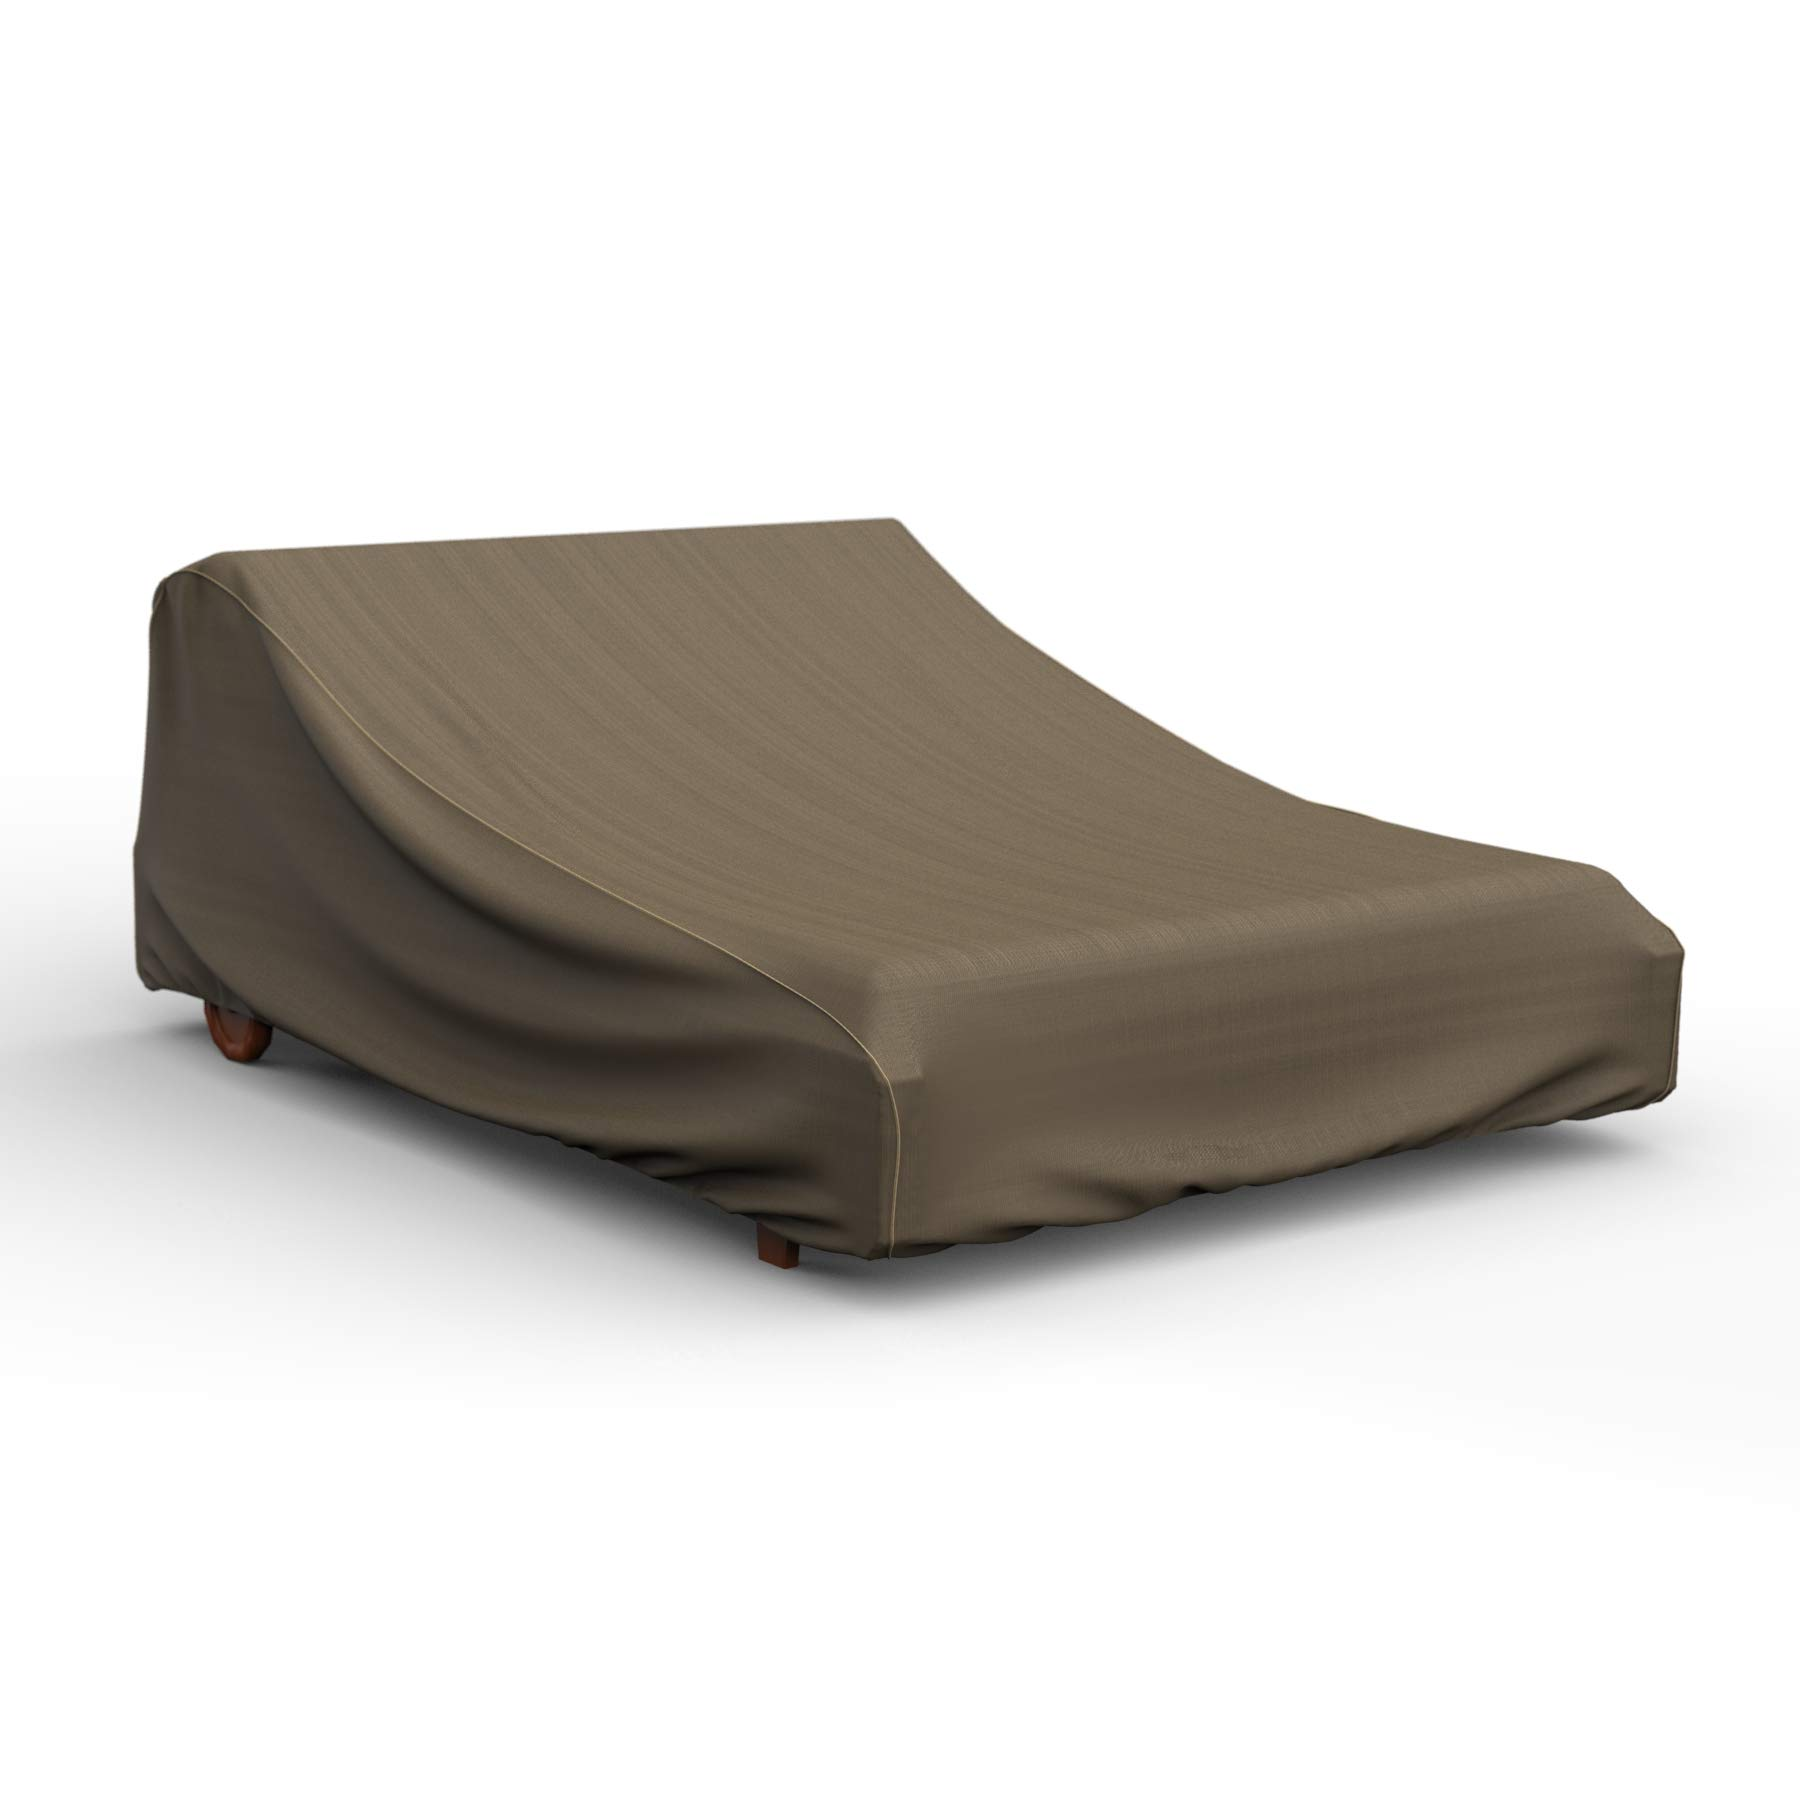 NeverWet Platinum Double Patio Chaise Lounge Cover, (Black and Tan Weave) by EmpireCovers (Image #10)